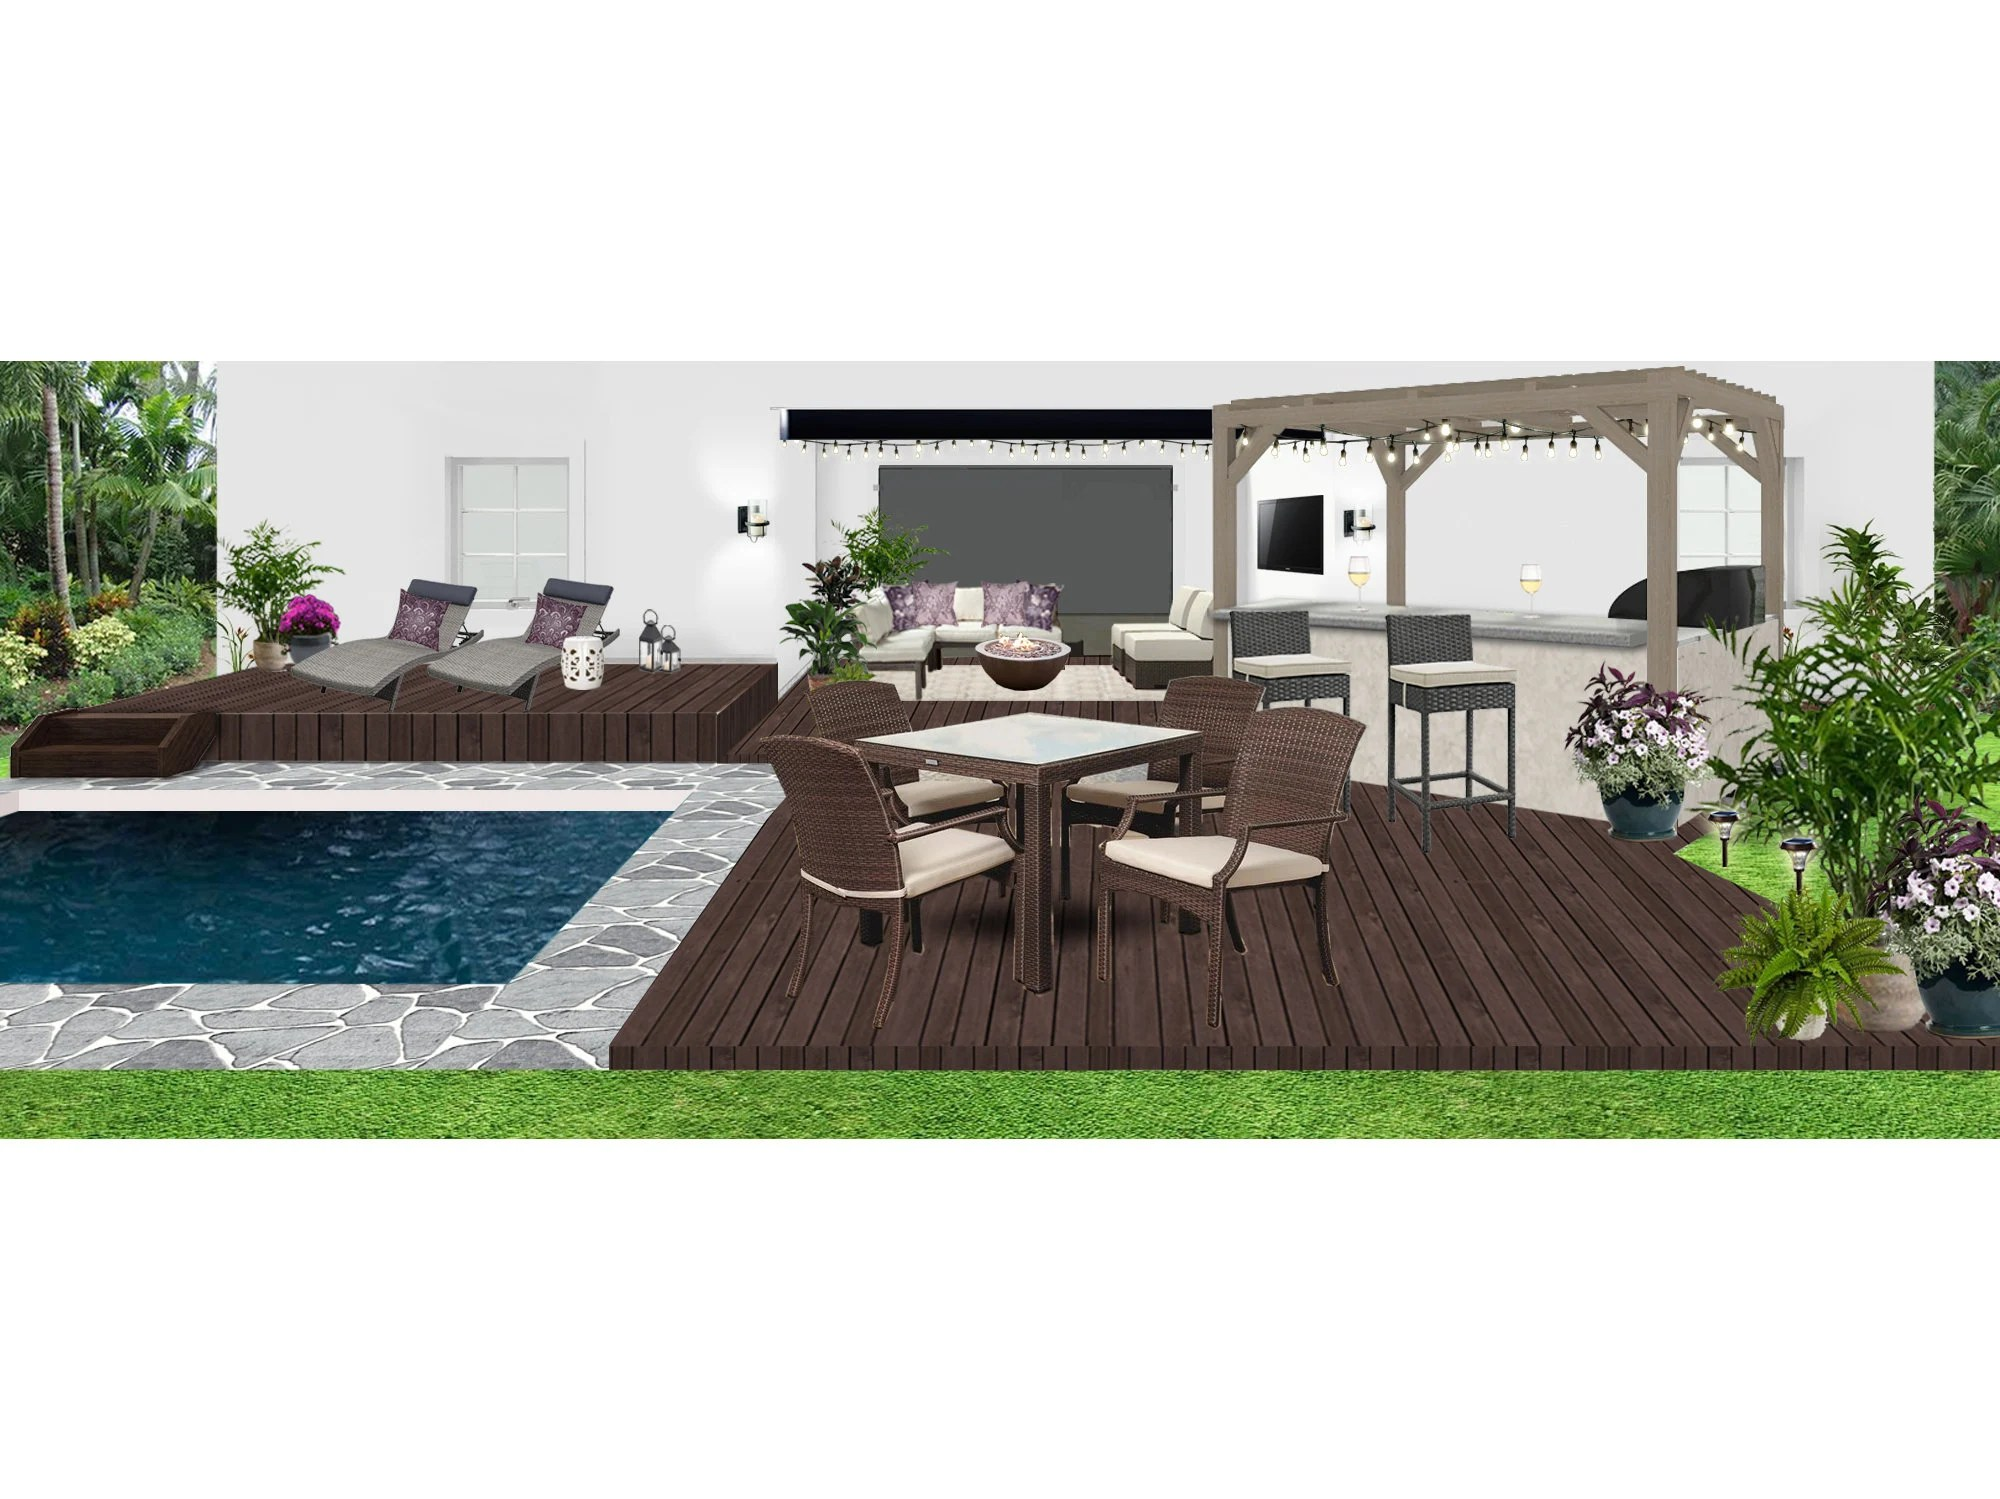 Patio Layout Designs Spring Sale Patio Design Backyard Render Transitional Lanai Patio Layout Patio Decorating